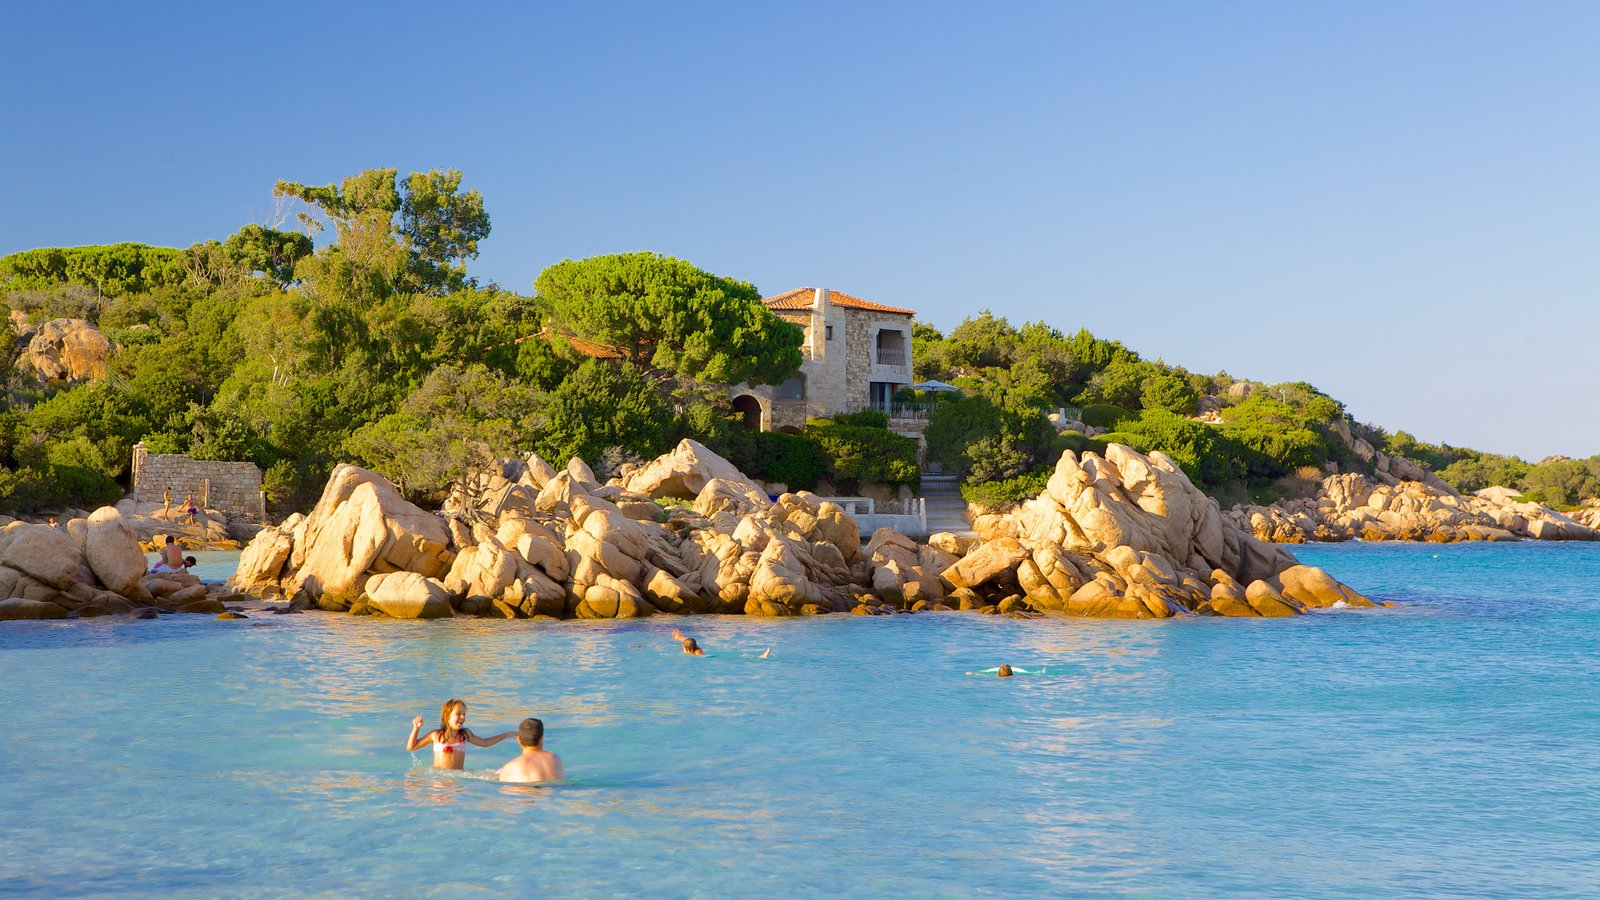 Capriccioli Beach showing a coastal town, rugged coastline and landscape views